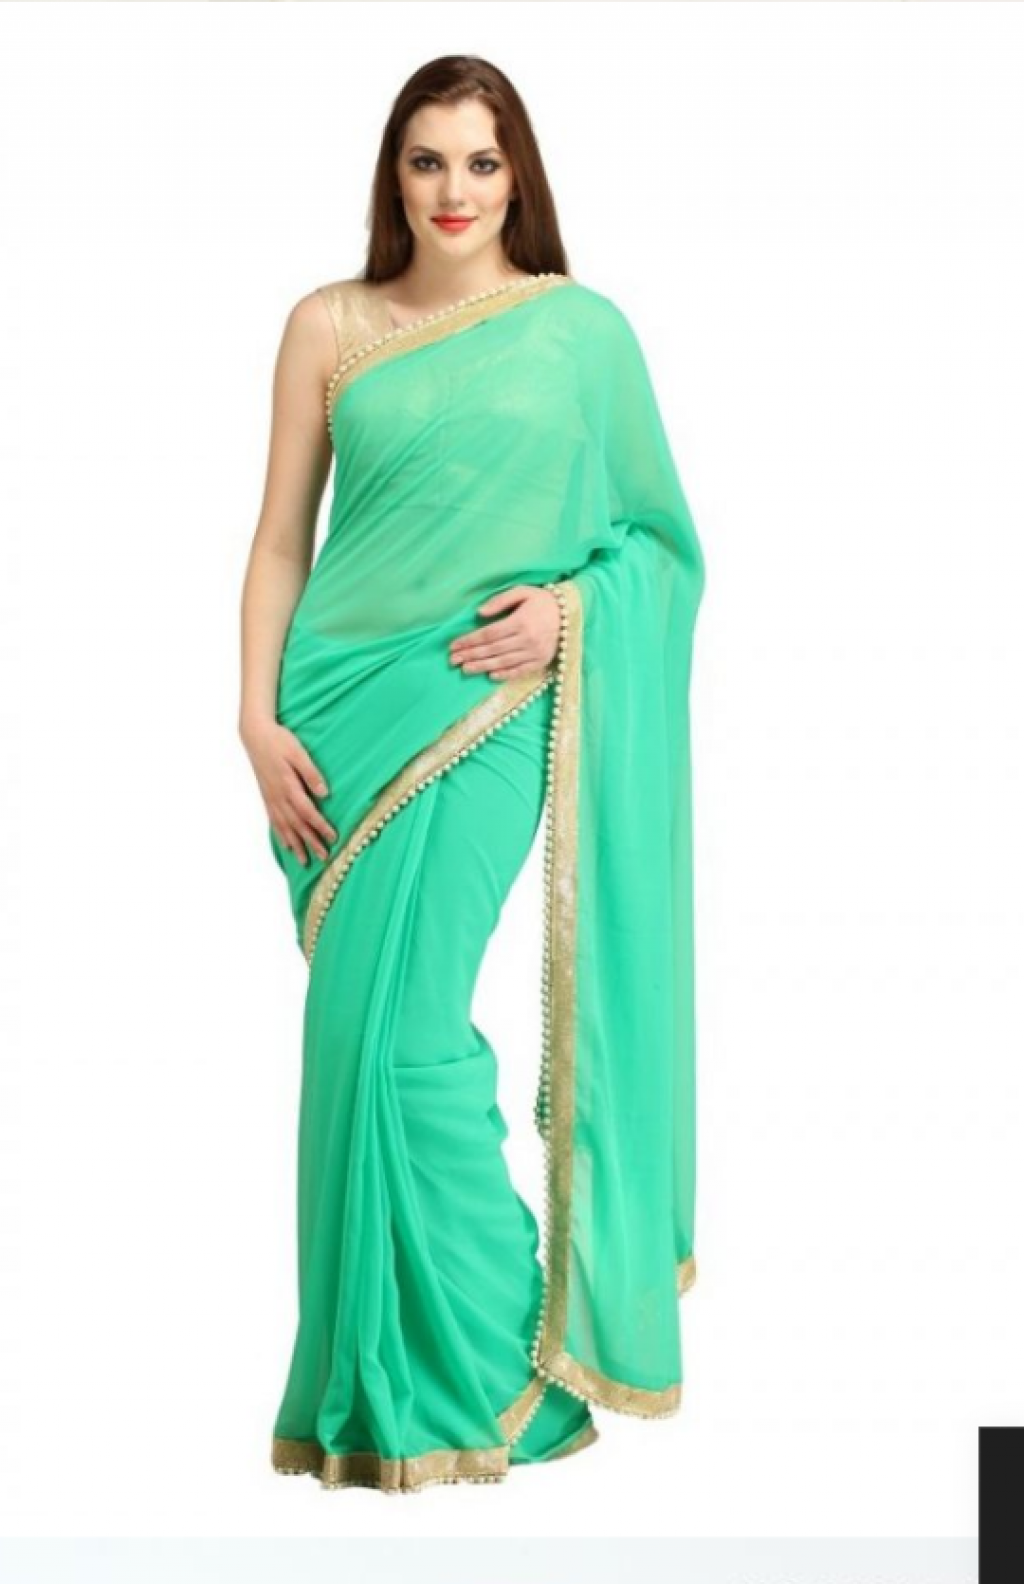 d08cdfecf55580 Buy Sea green Saree with golden blouse in Pakistan | Affordable.pk